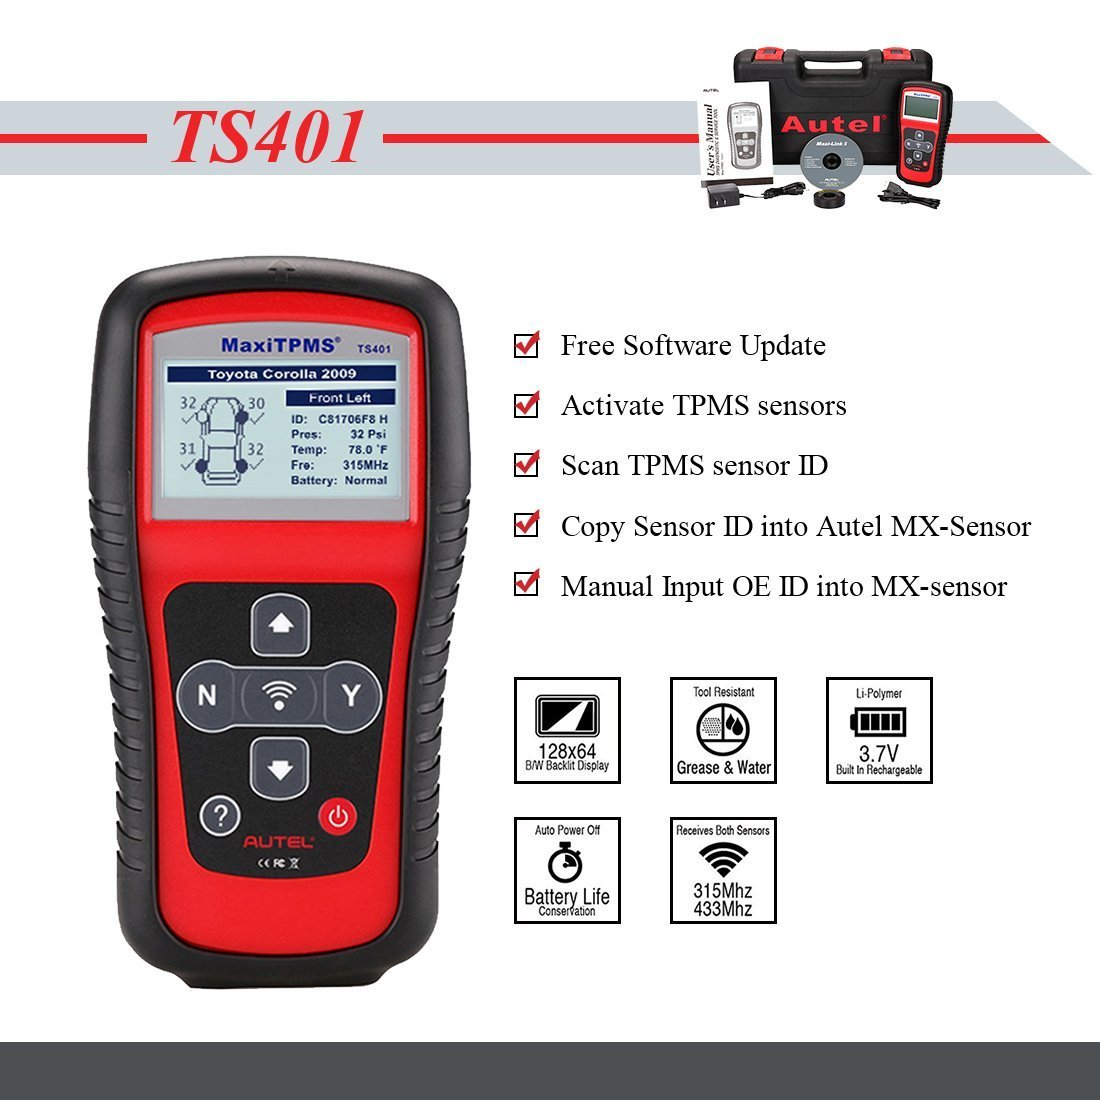 Autel TS401 MaxiTPMS Activation Tool with MX-sensor Programming Service by Autel (Image #2)